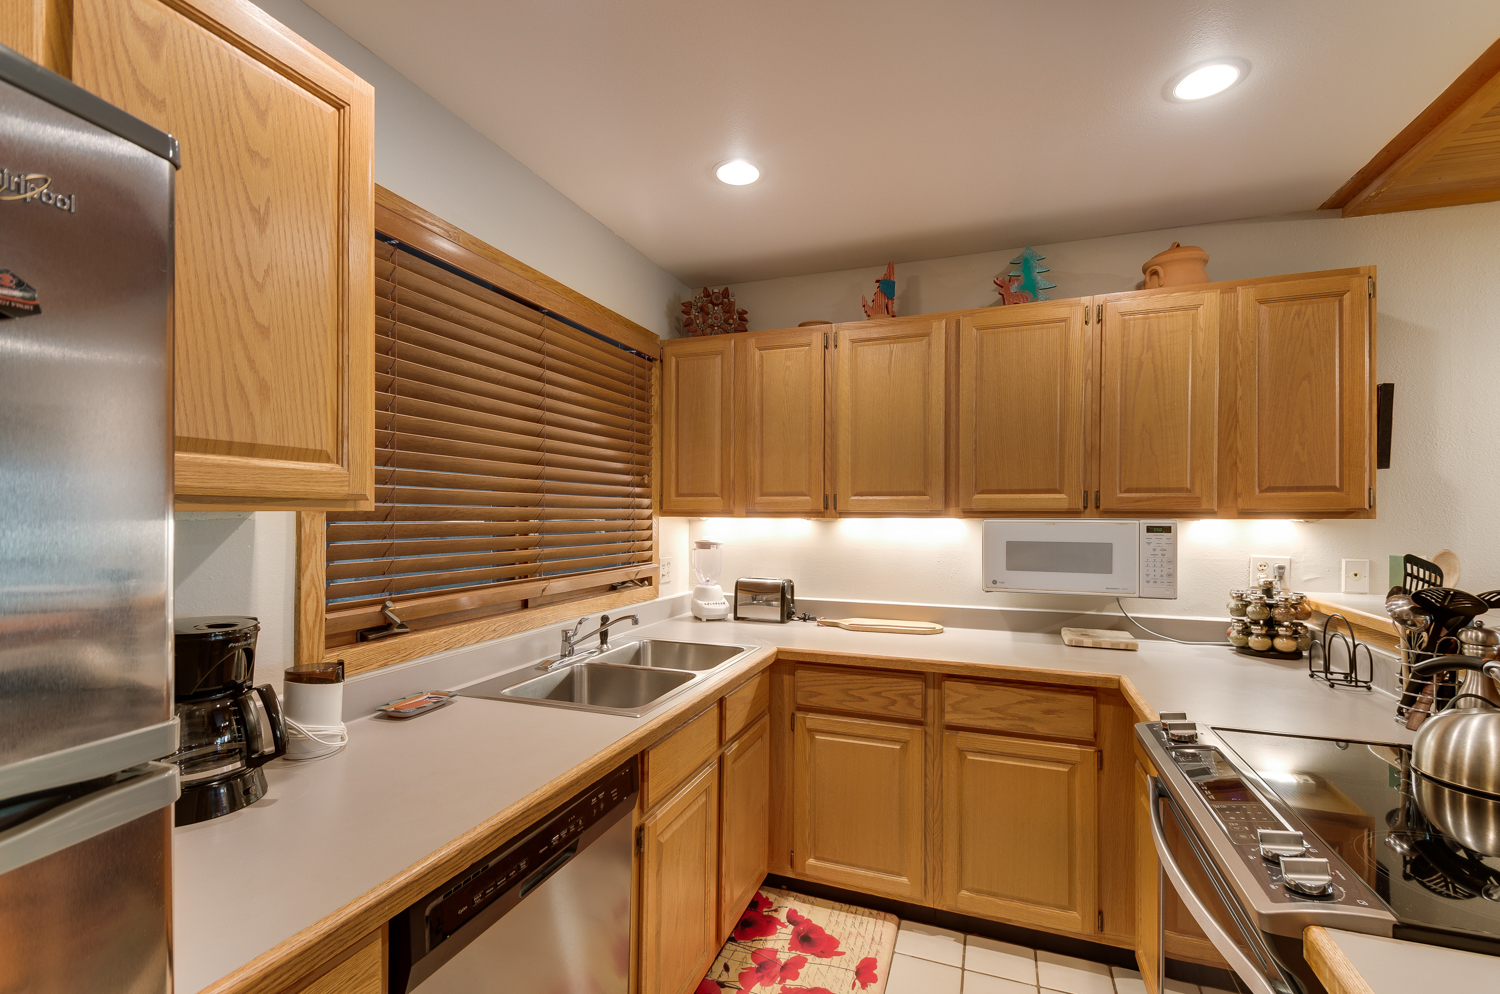 Kitchen with wood cabinets and light countertops